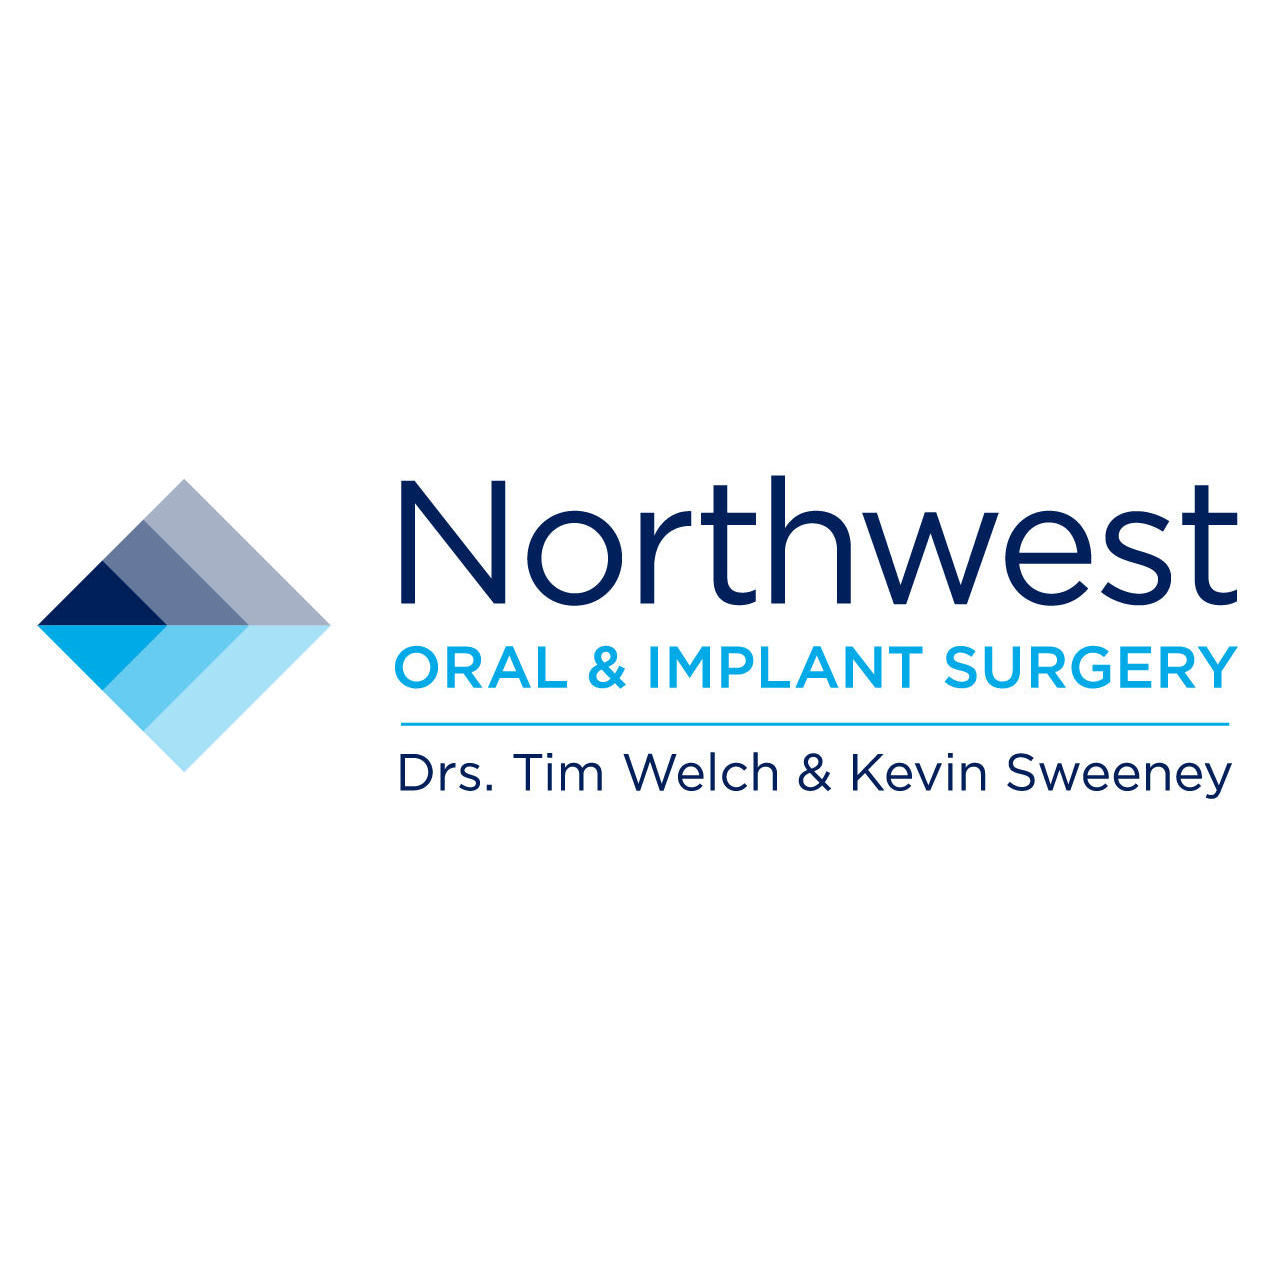 Dr. Timothy B. Welch, MD, DDS and Dr. Kevin Sweeney, MD, DDS